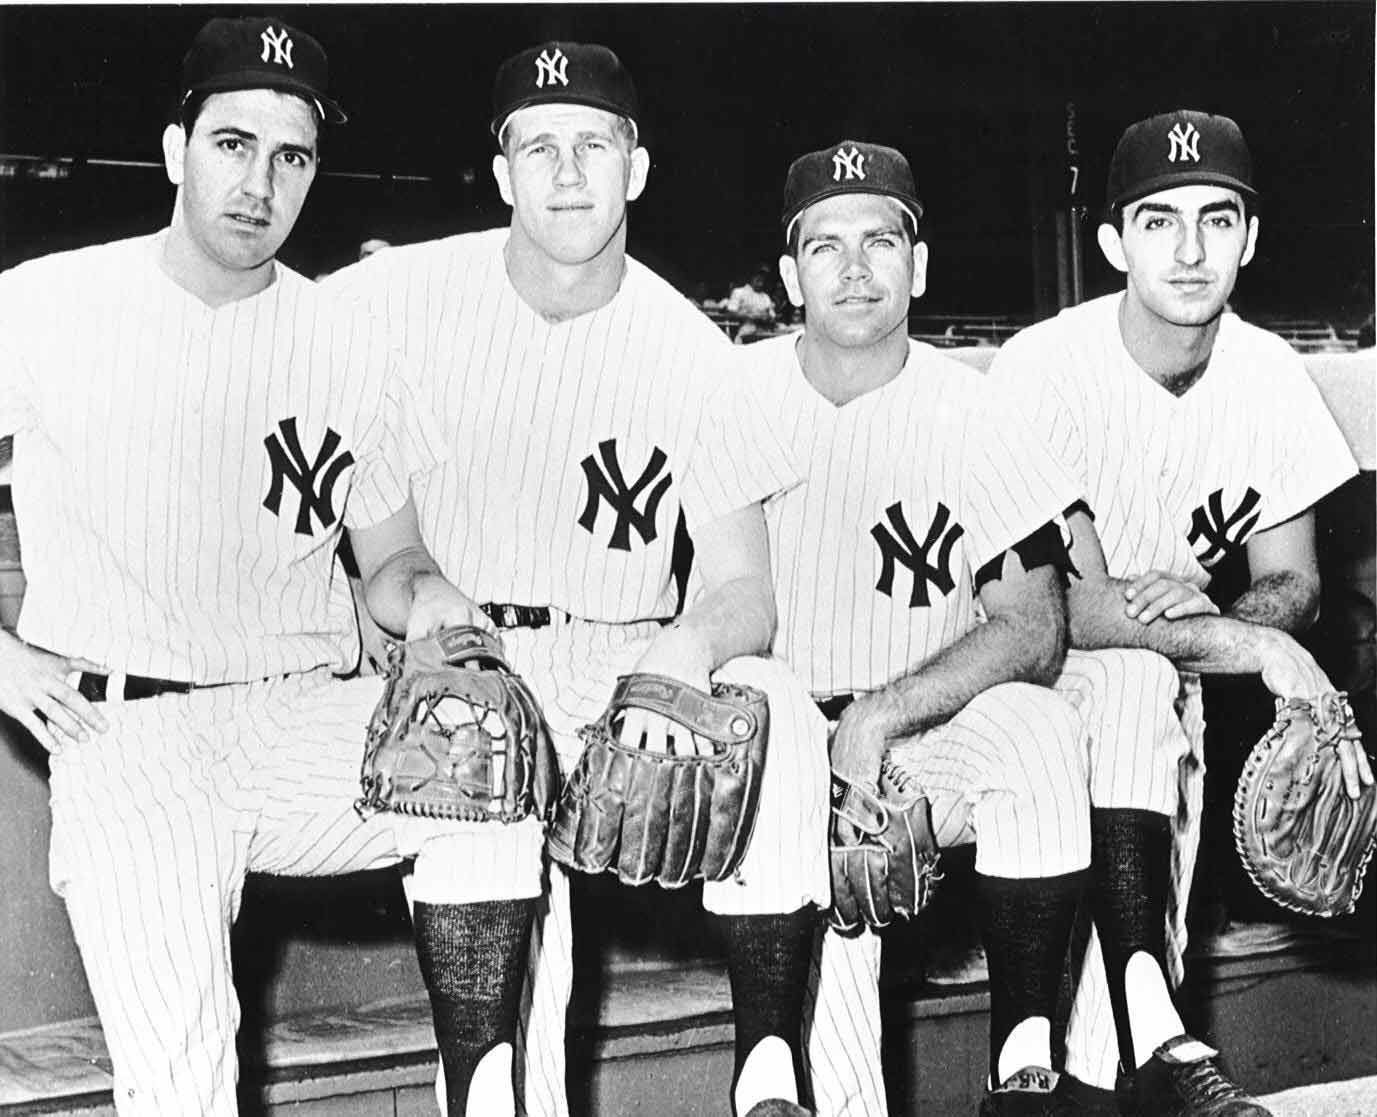 The Great Infield For The New York Yankees Of The Early 1960s Consisted Of From Left To Right Clete Boye With Images New York Yankees New York Yankees Stadium Ny Yankees